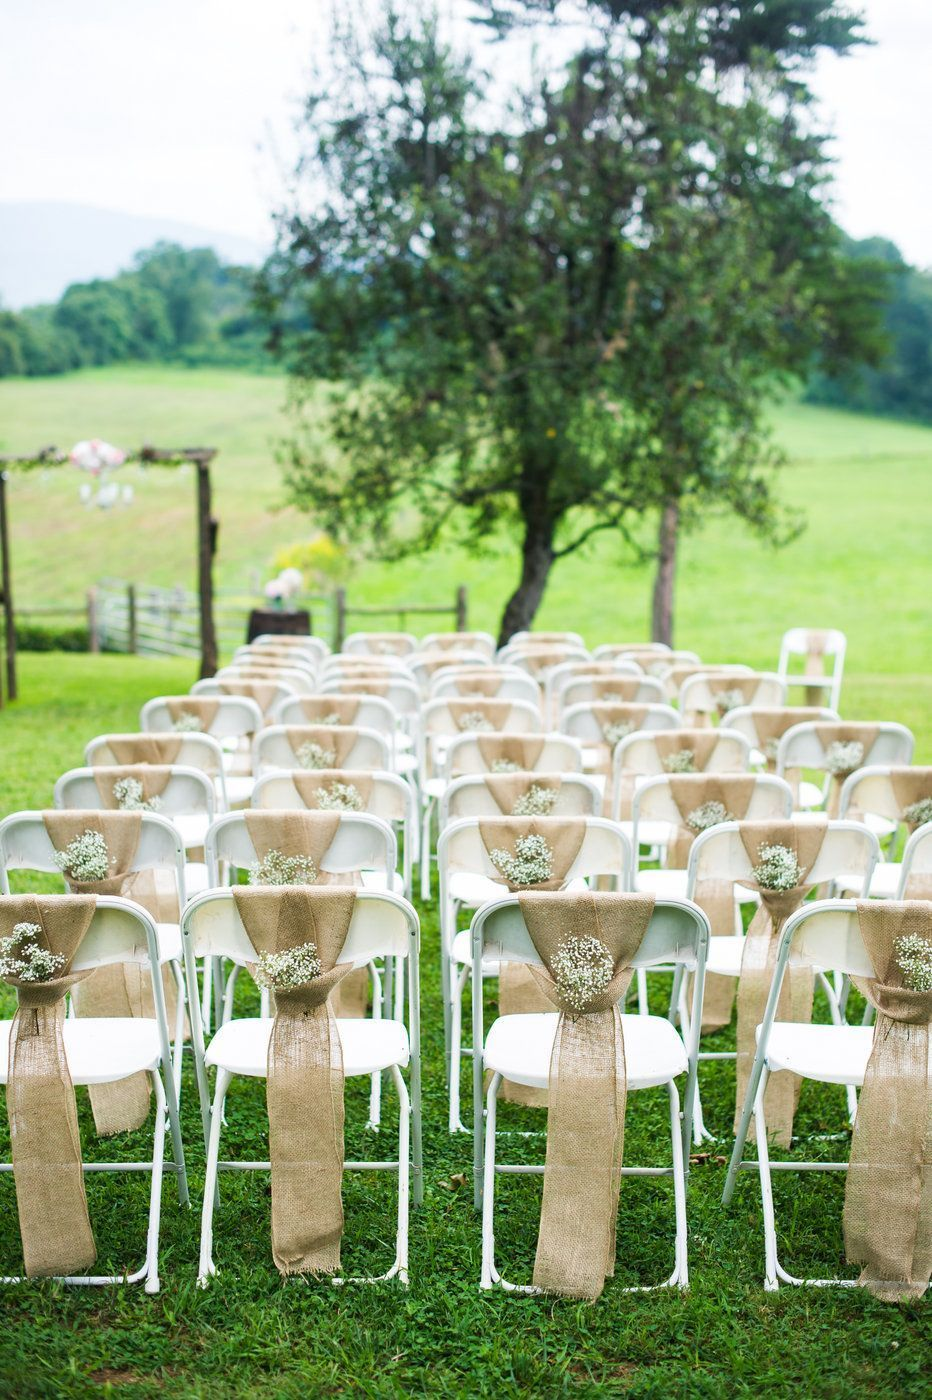 Diy Vintage Barn Wedding Ceremony Chair Decor Excellent Way To Hide Ugly Folding Chairs Foldingchair